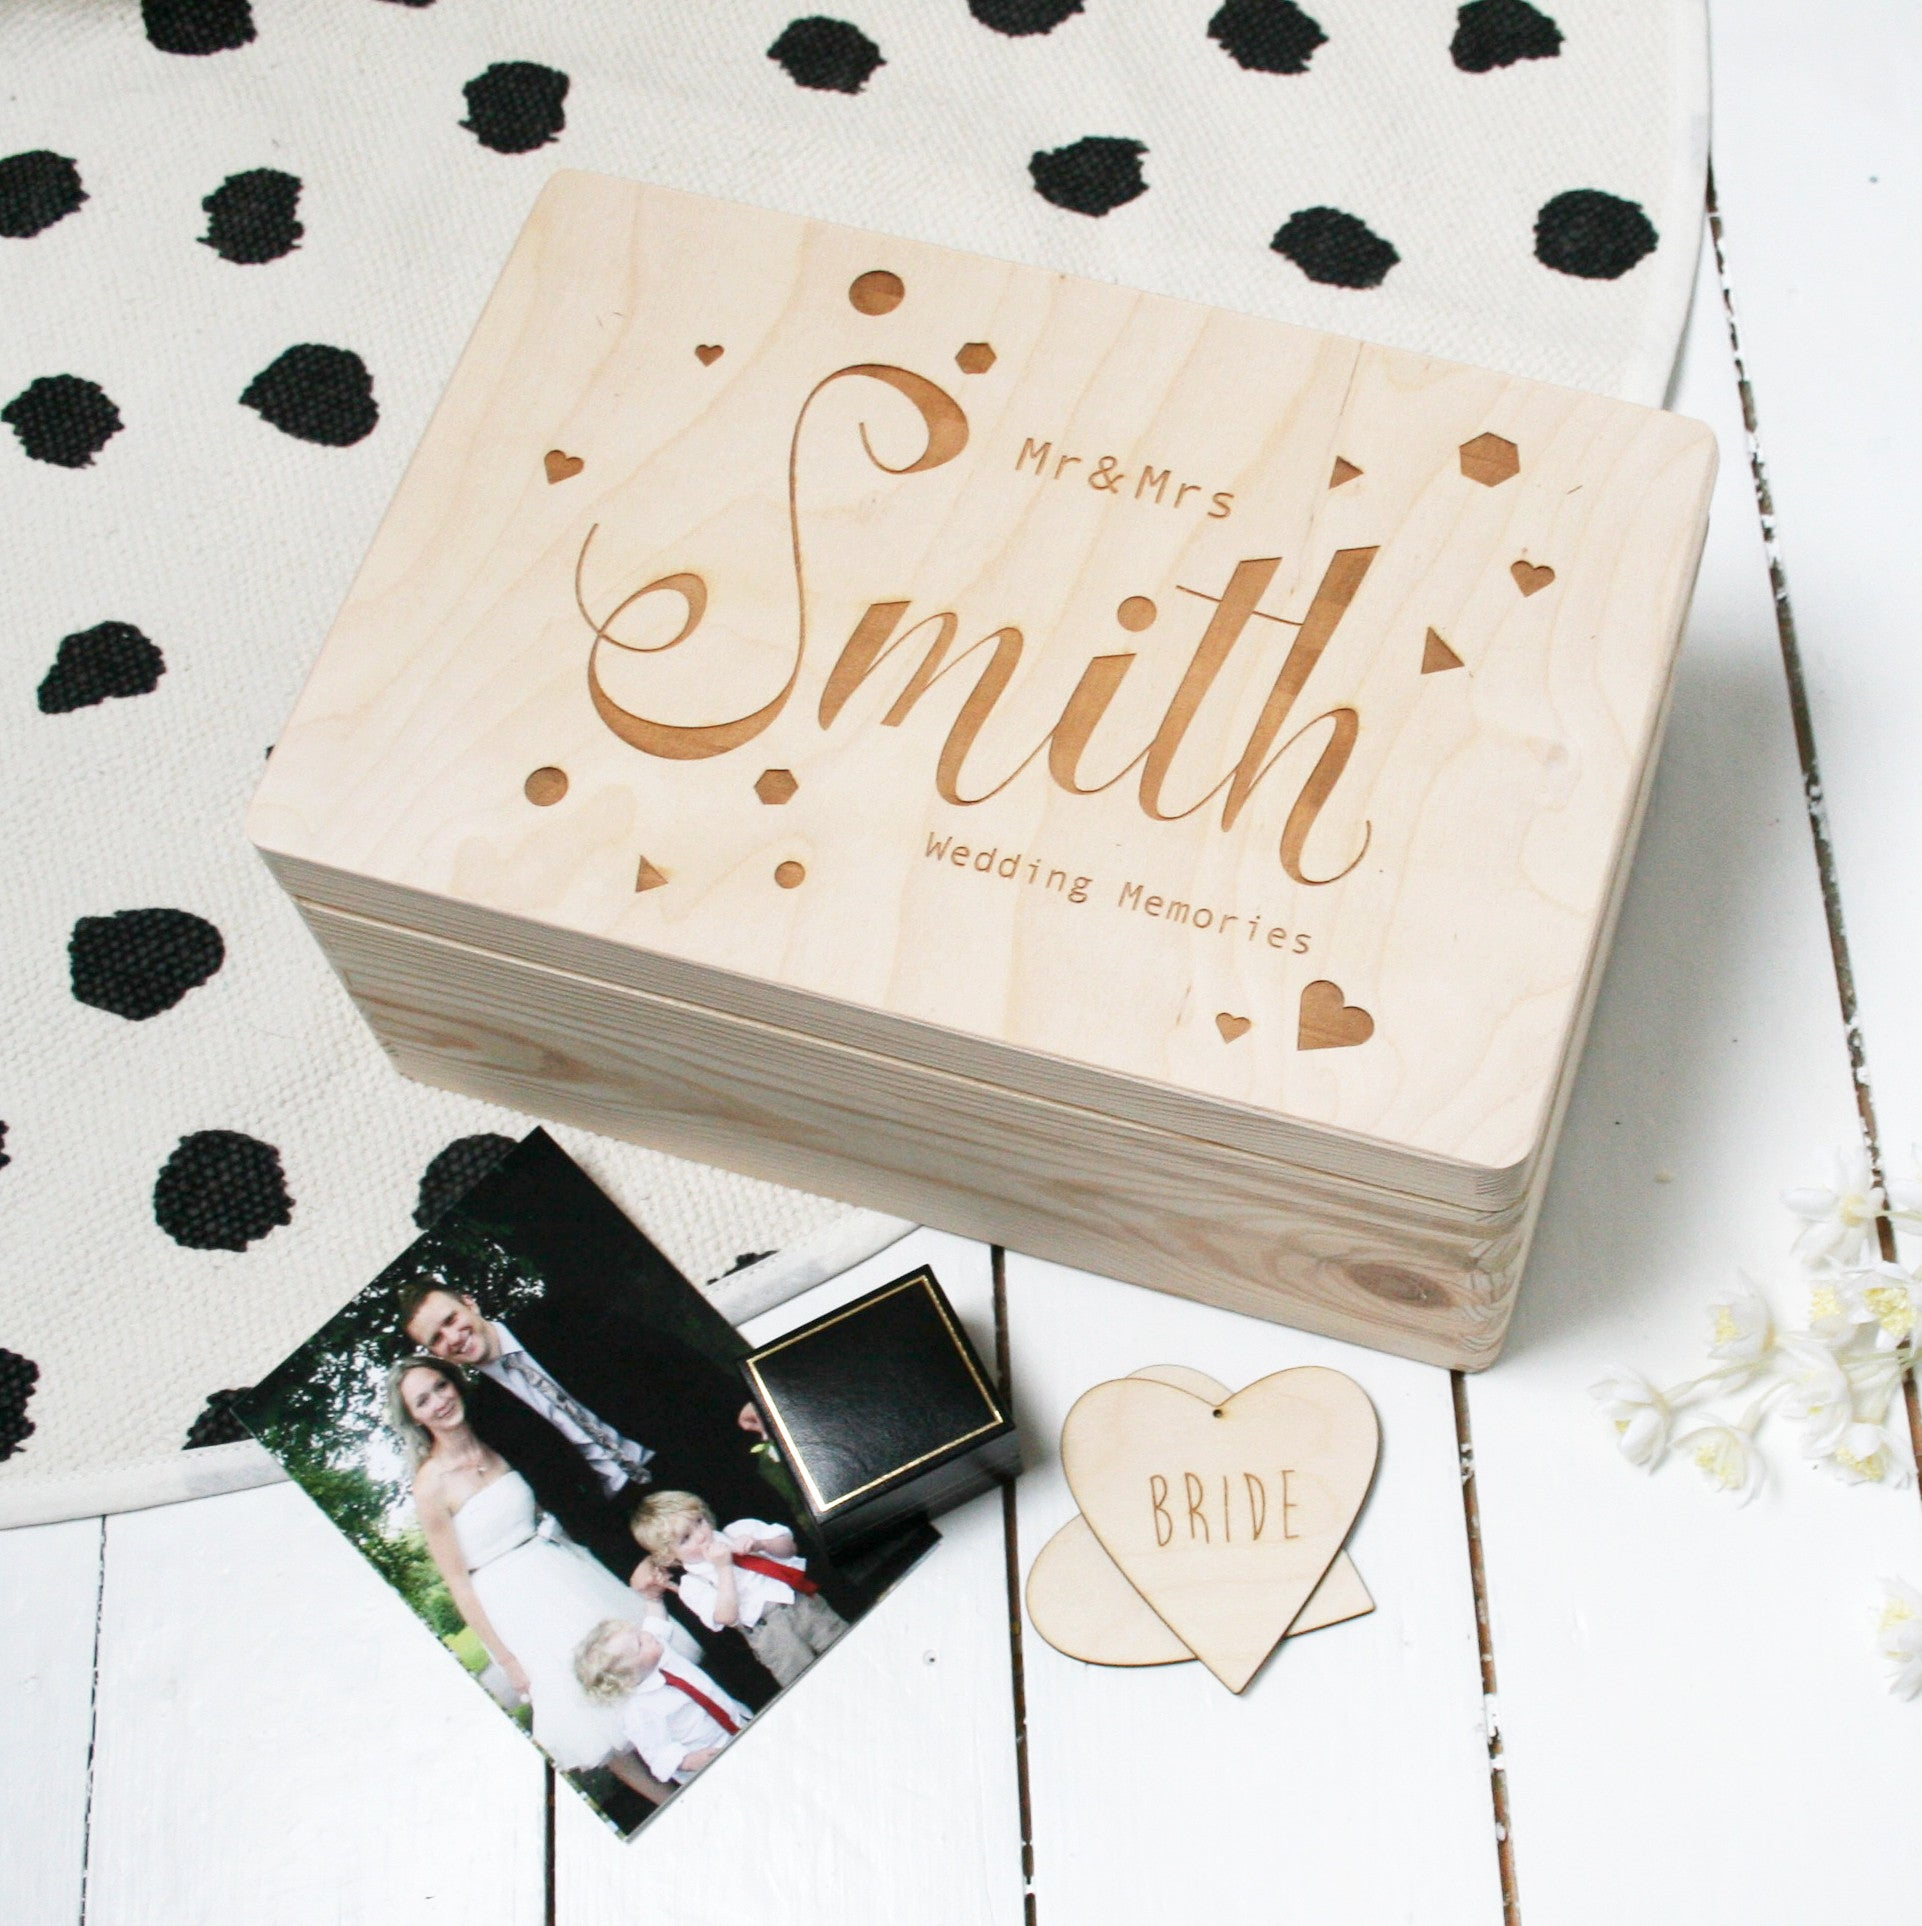 Personalised Wooden Wedding Memory Box Designed by Modo – Modo